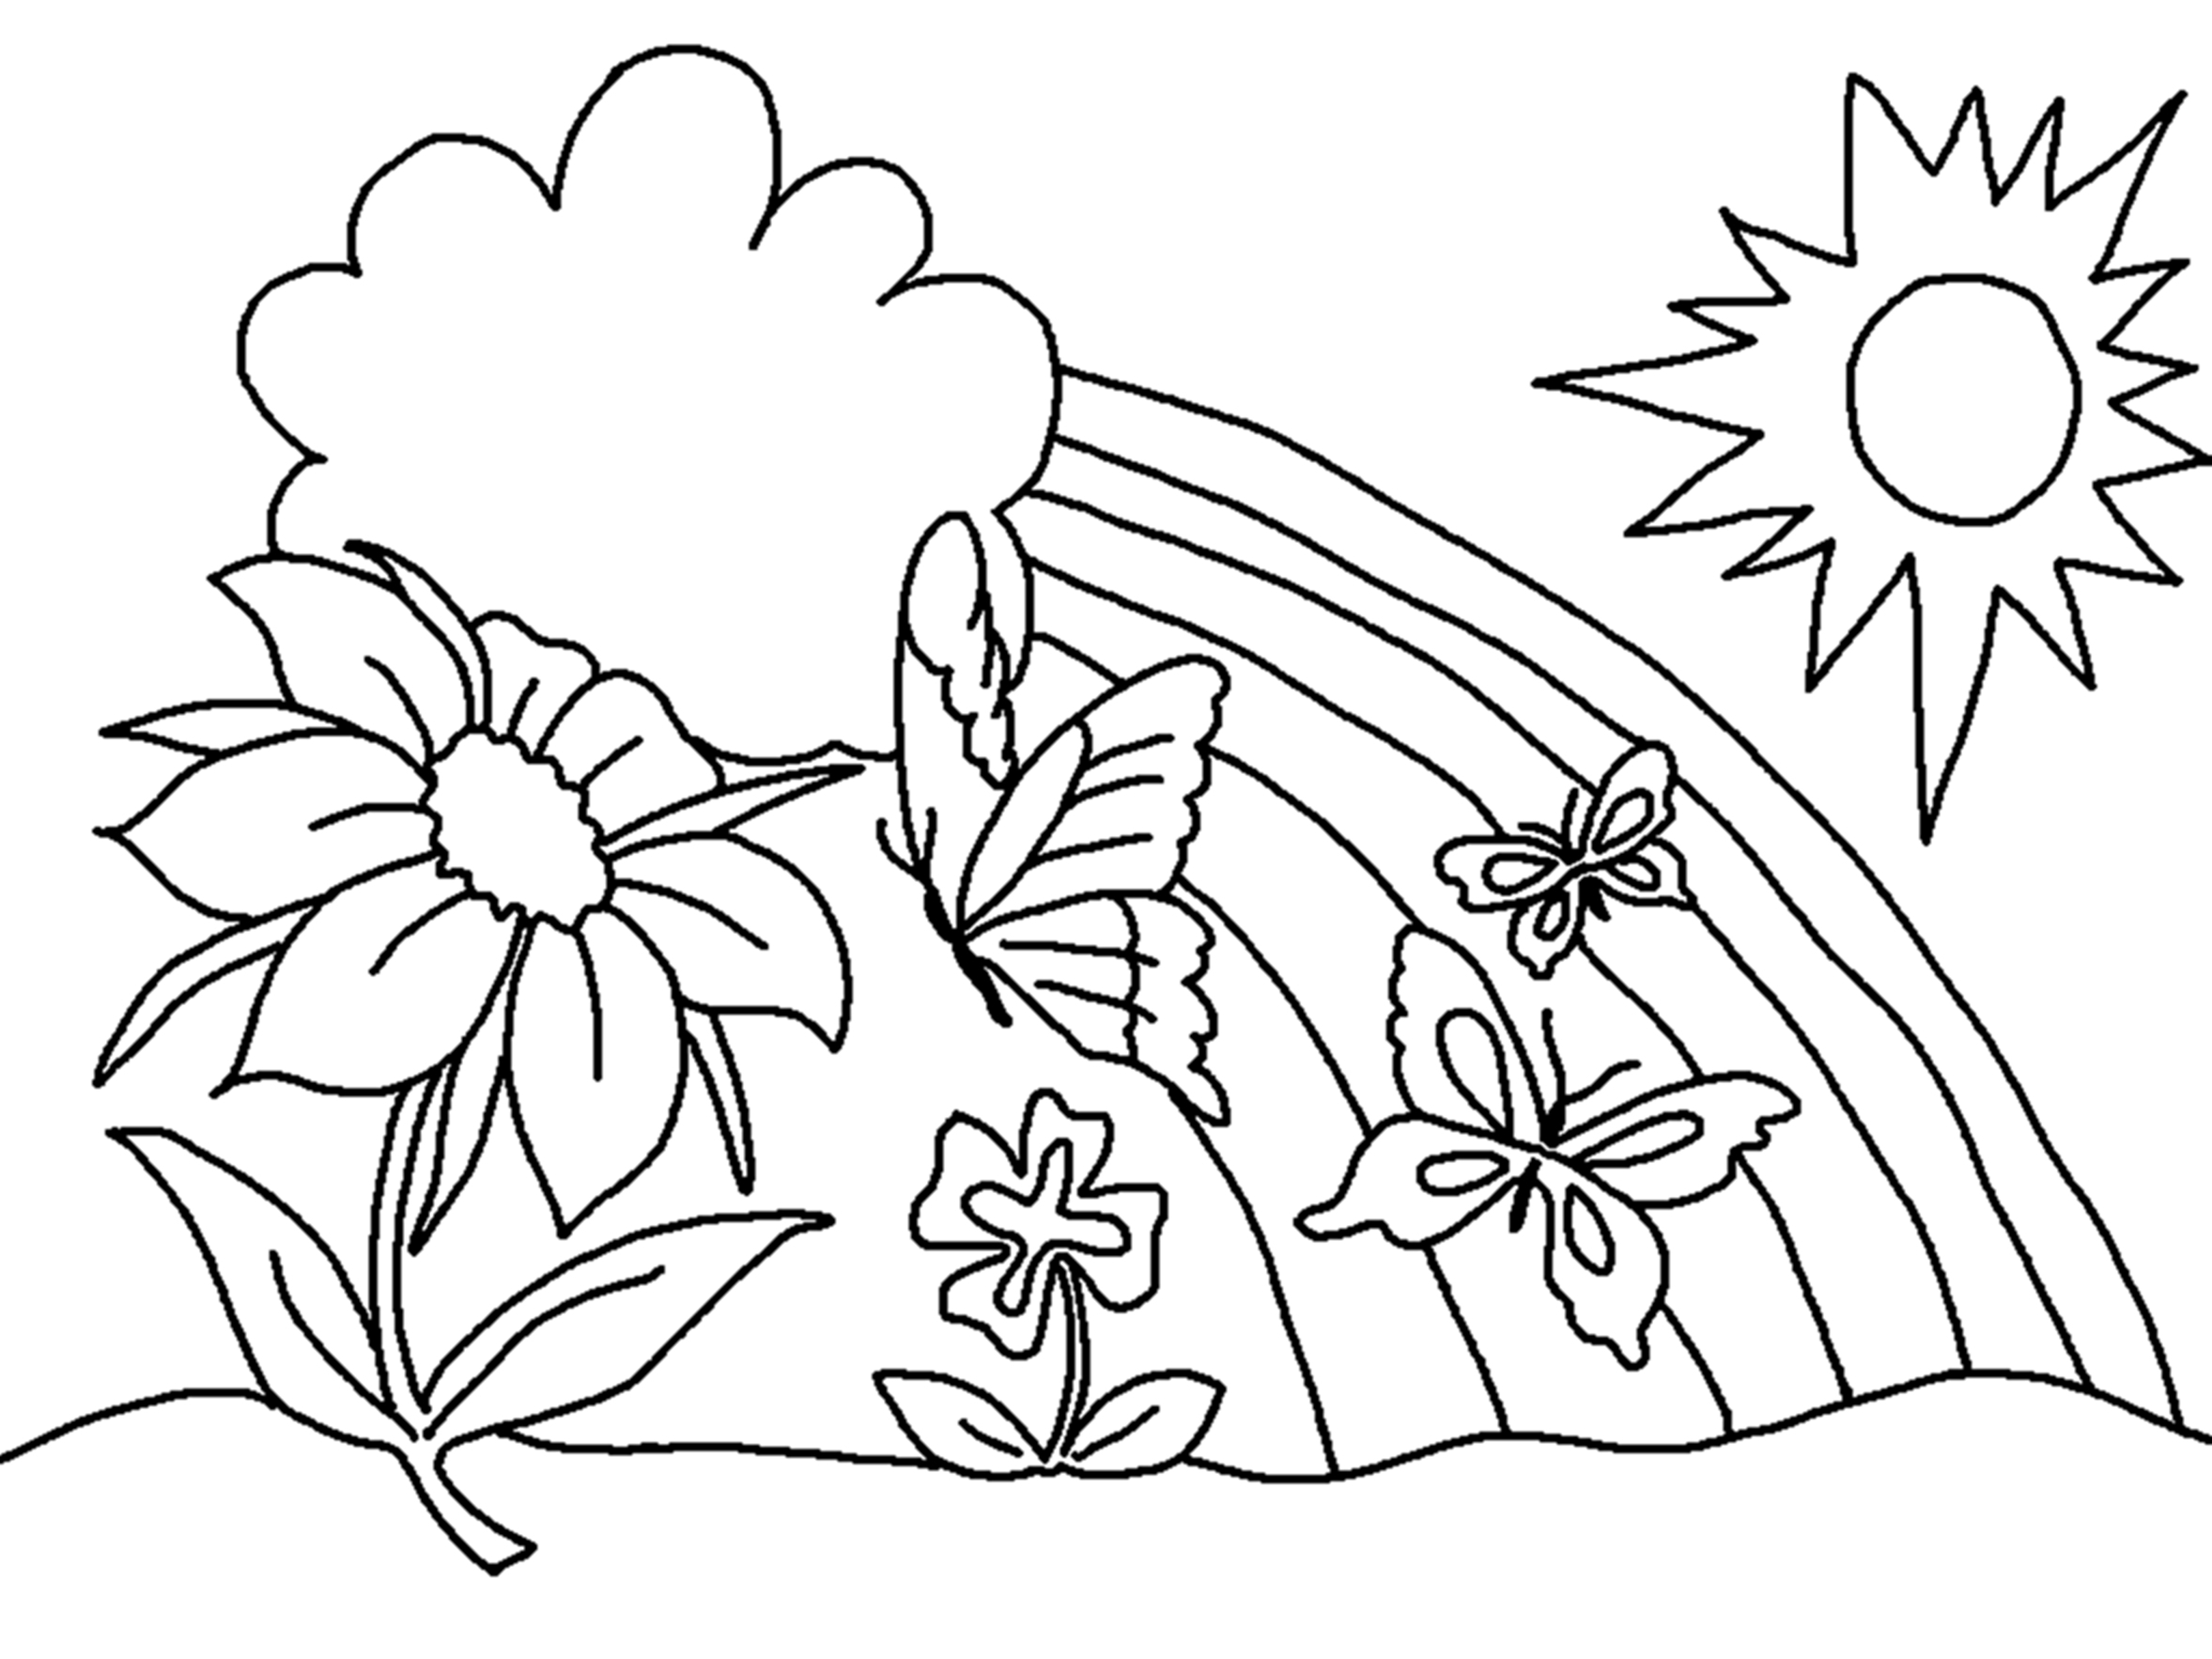 Flowers Coloring Pages Free Printable Free Printable Flower Coloring Pages For Kids Best Coloring Pages